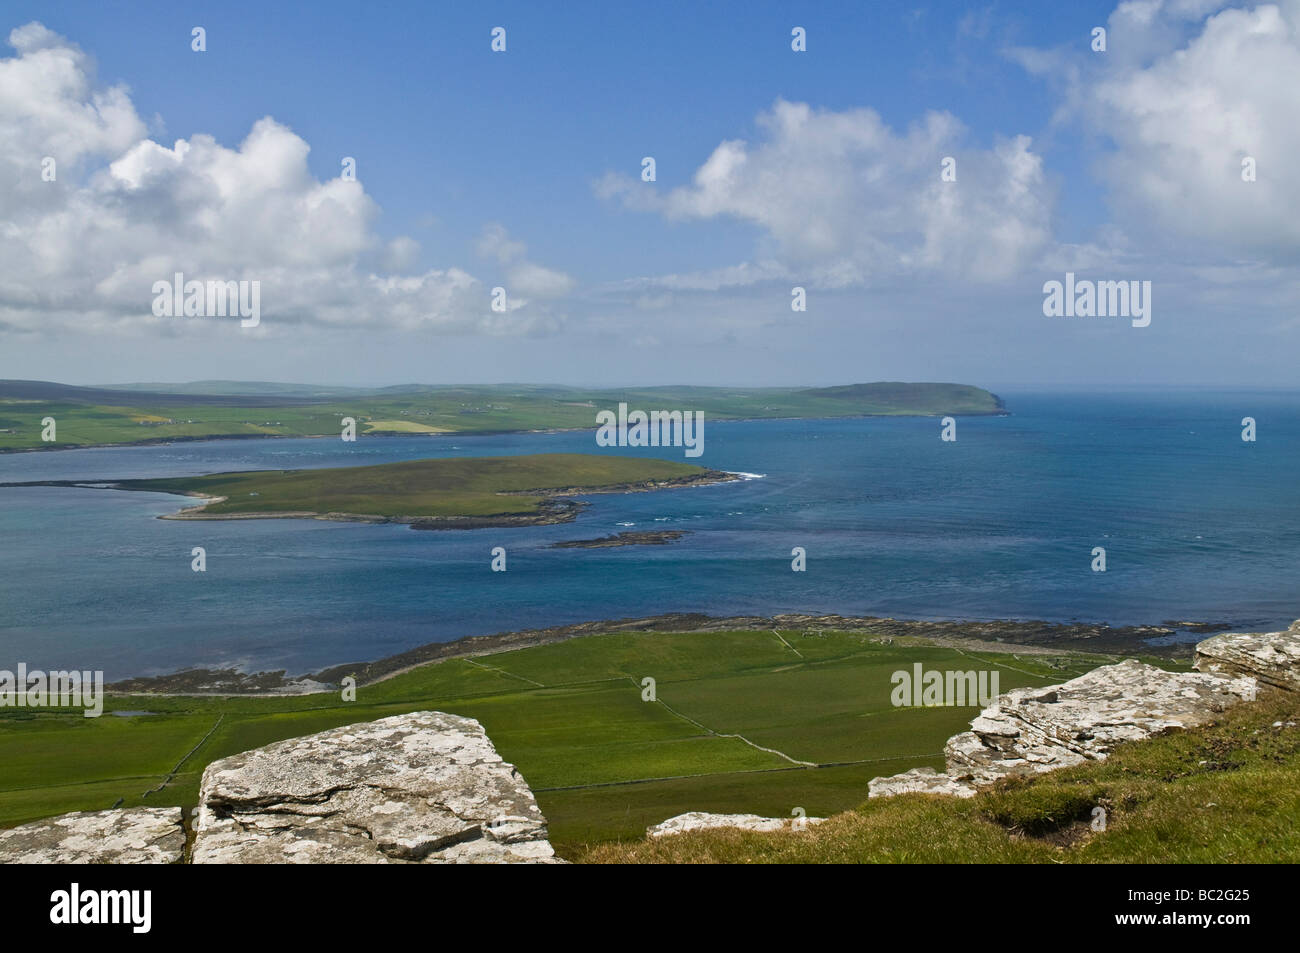 dh Eynhallow Sound ROUSAY ORKNEY Eynhallow island and Evie Orkney Westmainland islands scotland sounds - Stock Image